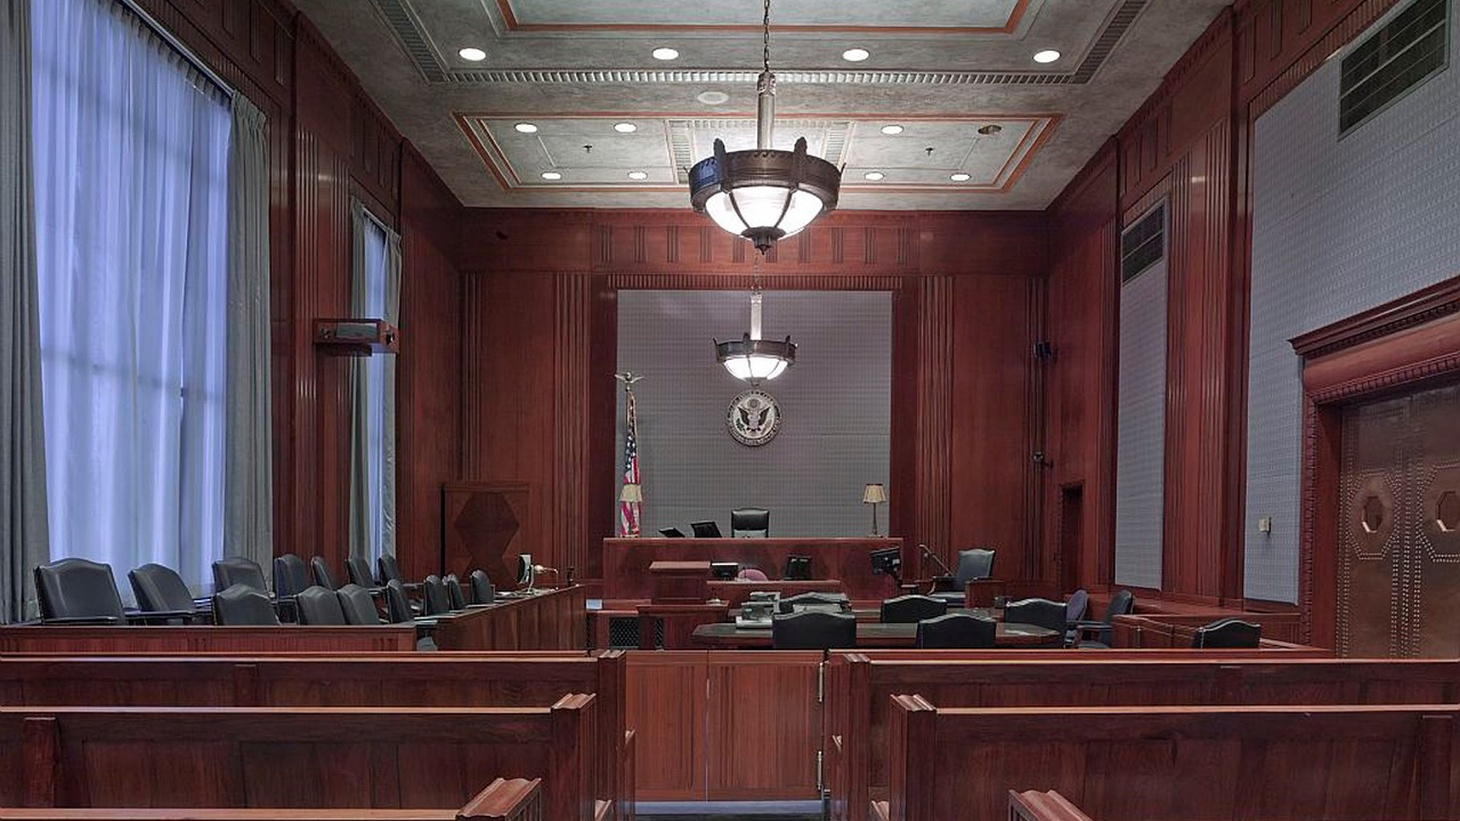 NPR News' full coverage of today's hearing in the 9th US Circuit Court of Appeals about President Trump's executive order barring travel from seven predominantly-Muslim countries. Begins at 3pm PST.